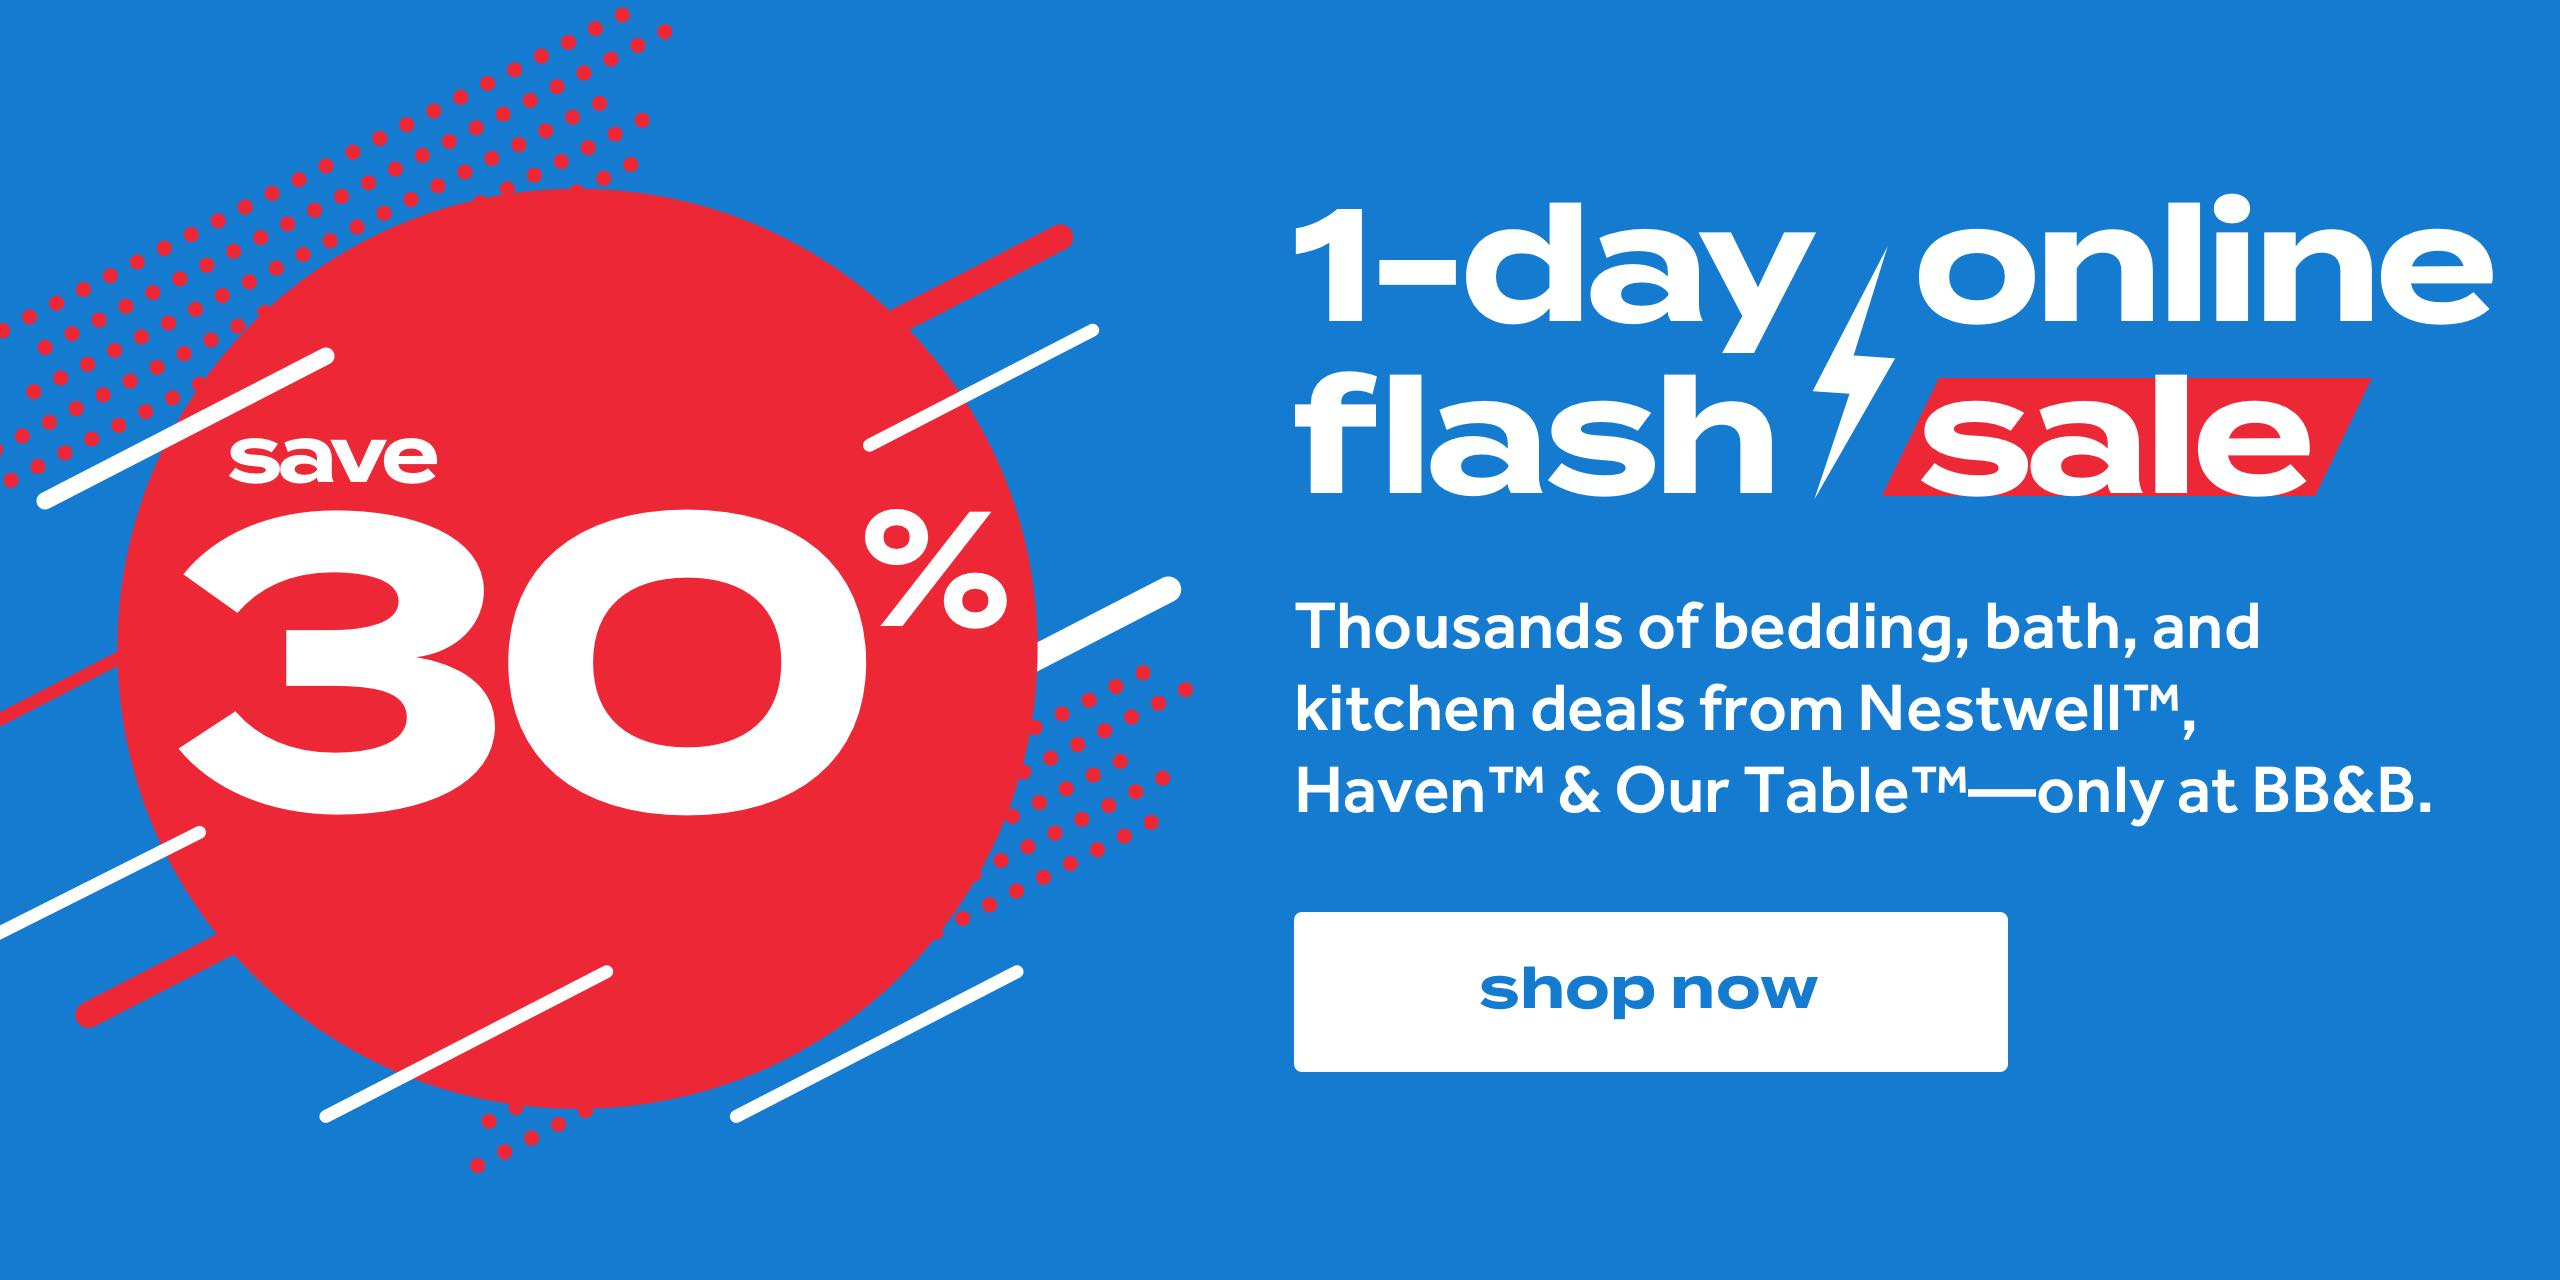 save 30%. 1-day online flash sale. Thousands of bedding, bath, and kitchen deals from Nestwell™, Haven™ & Our Table™ -- only at BB&B. shop now